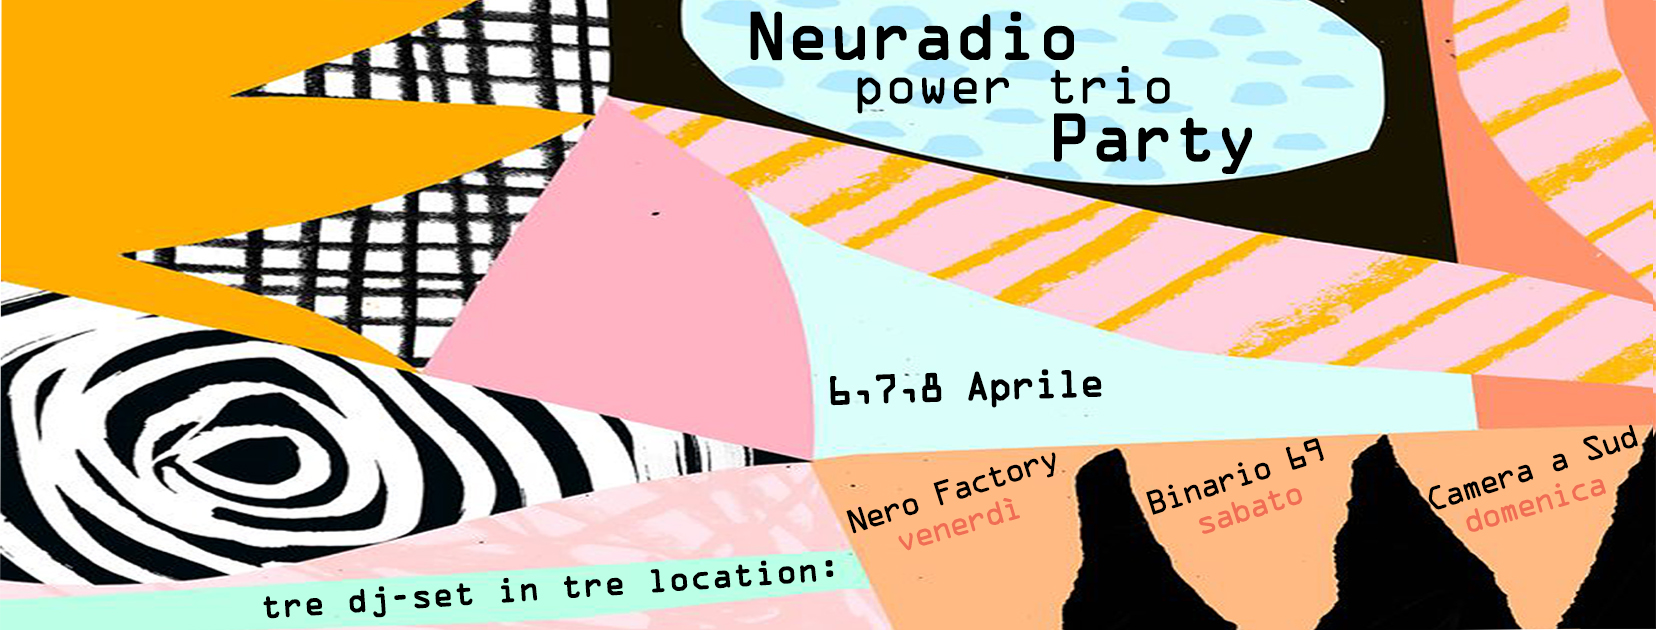 NEU RADIO Power Trio Party!